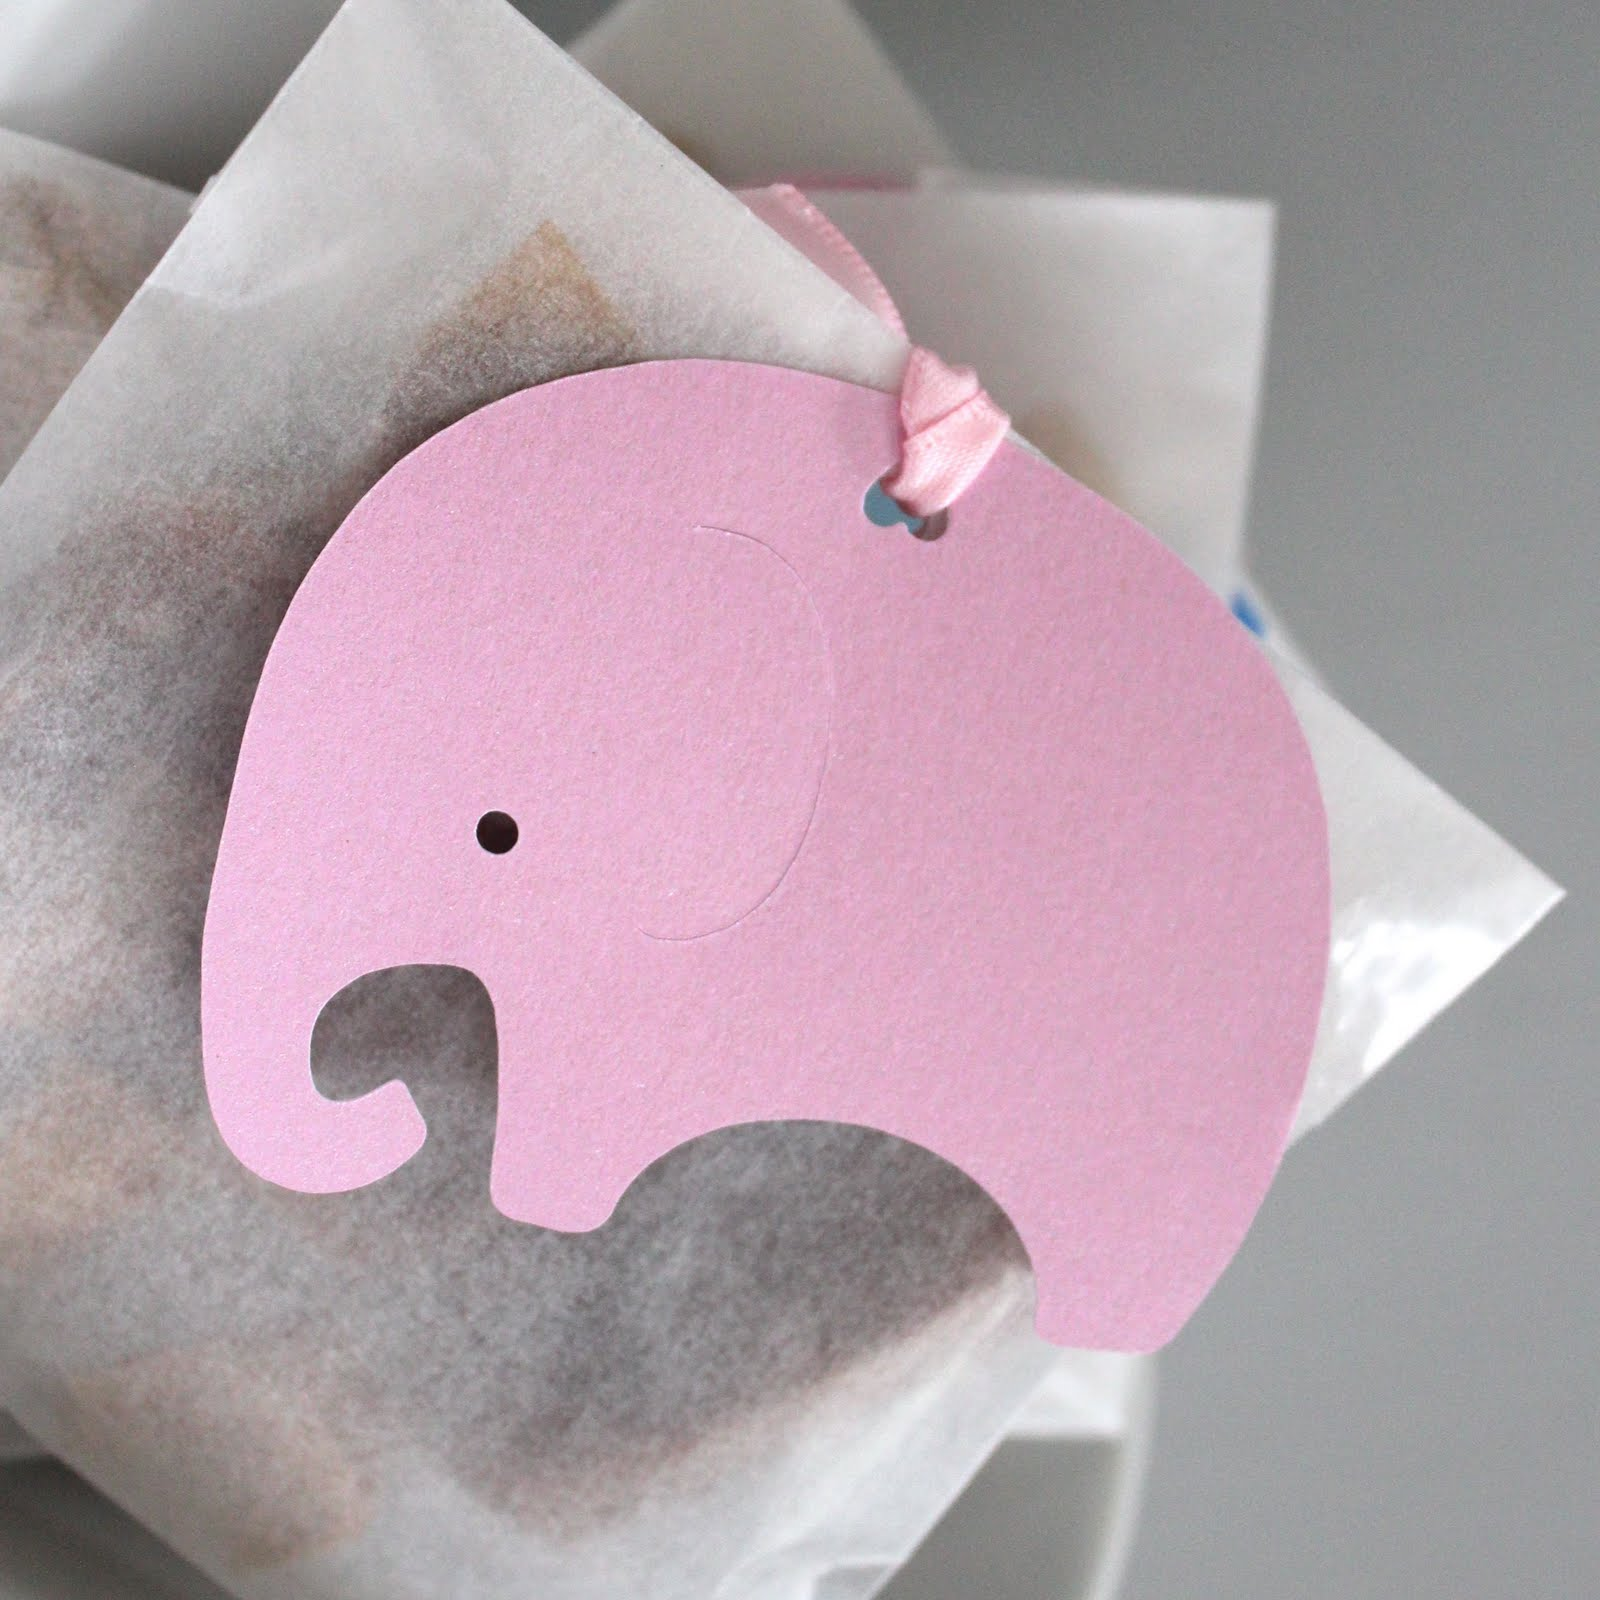 Sweet & Savory :: The Caramel Jar Blog: The Elephants Come